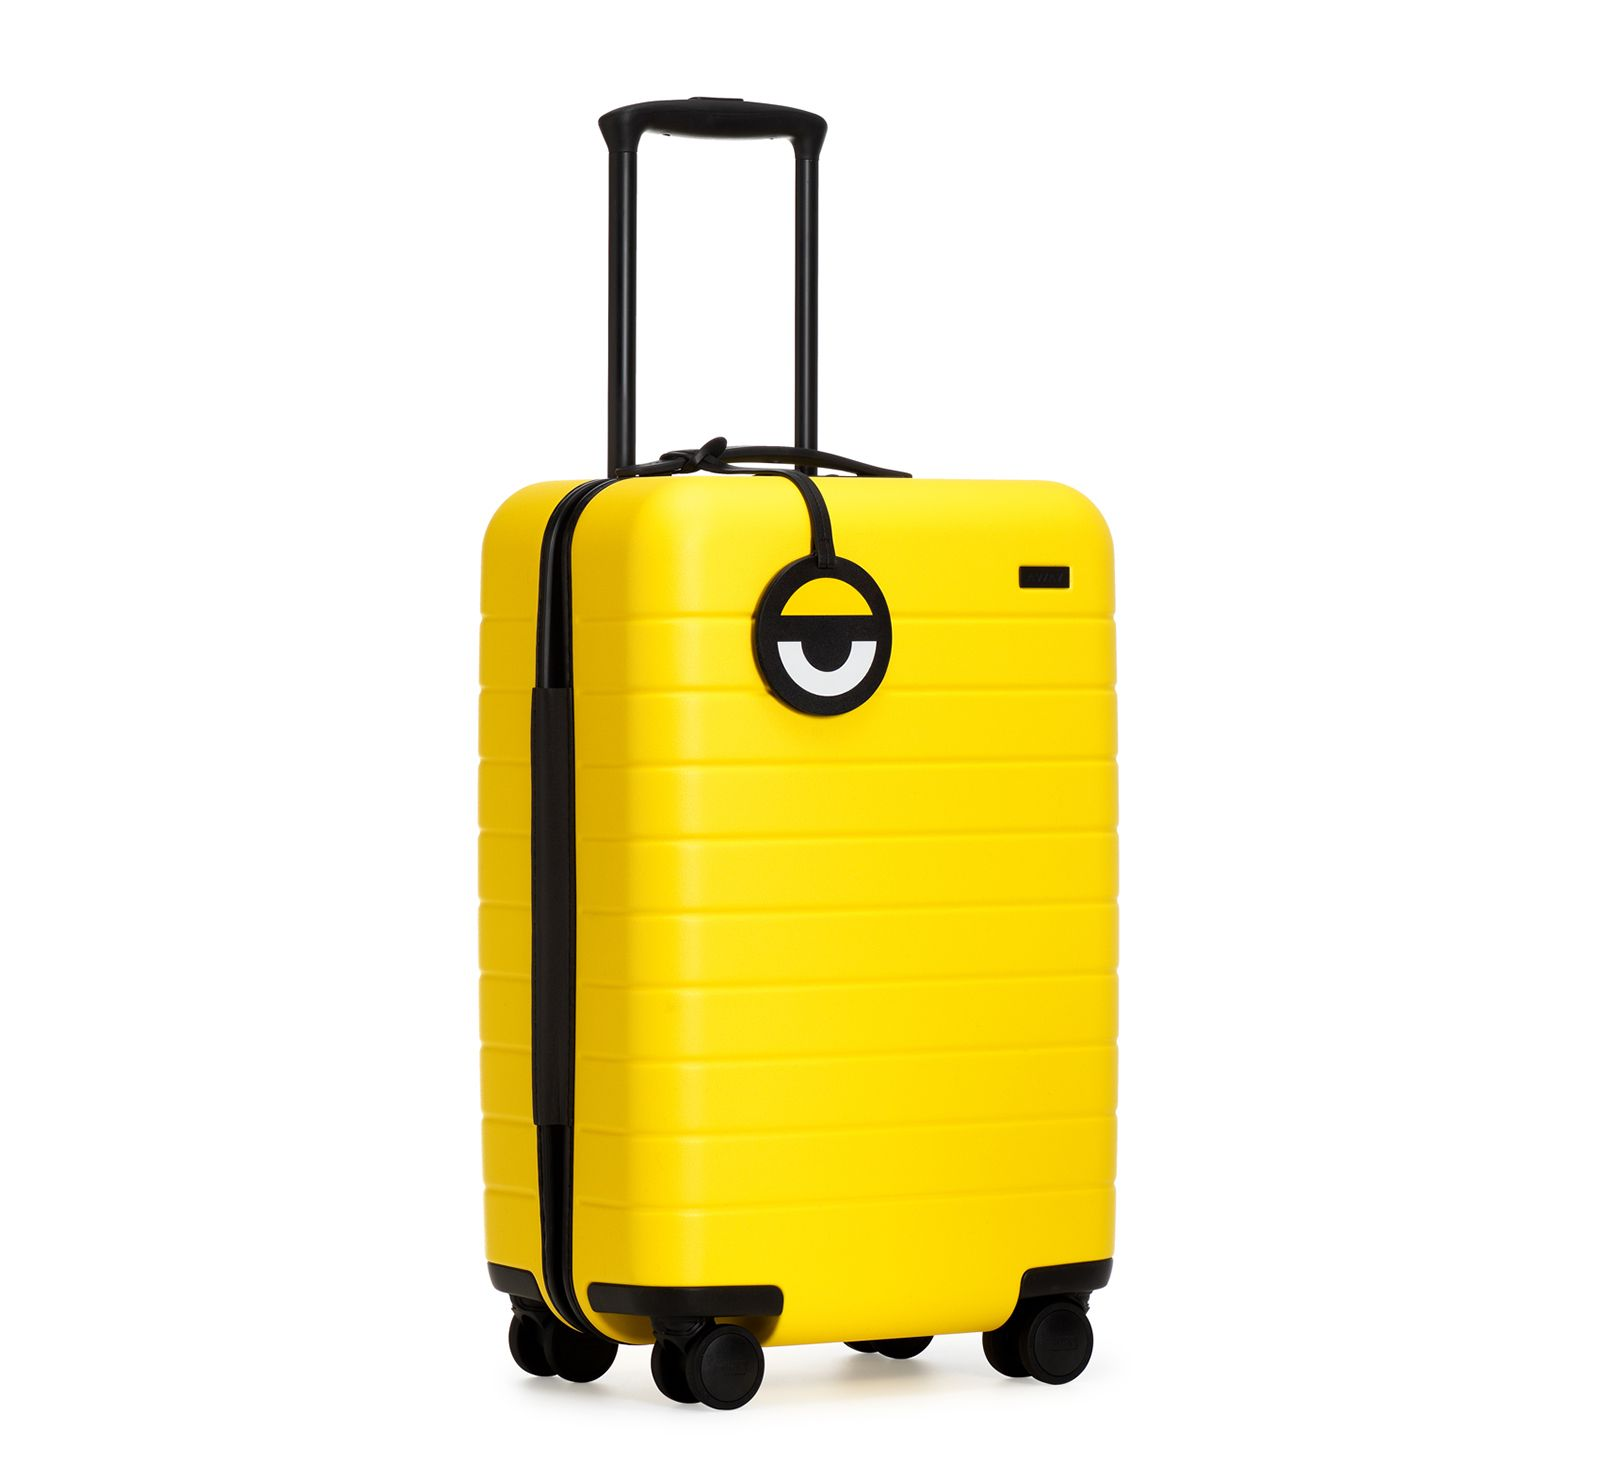 Away Travel Suitcase apparently the best has a USB